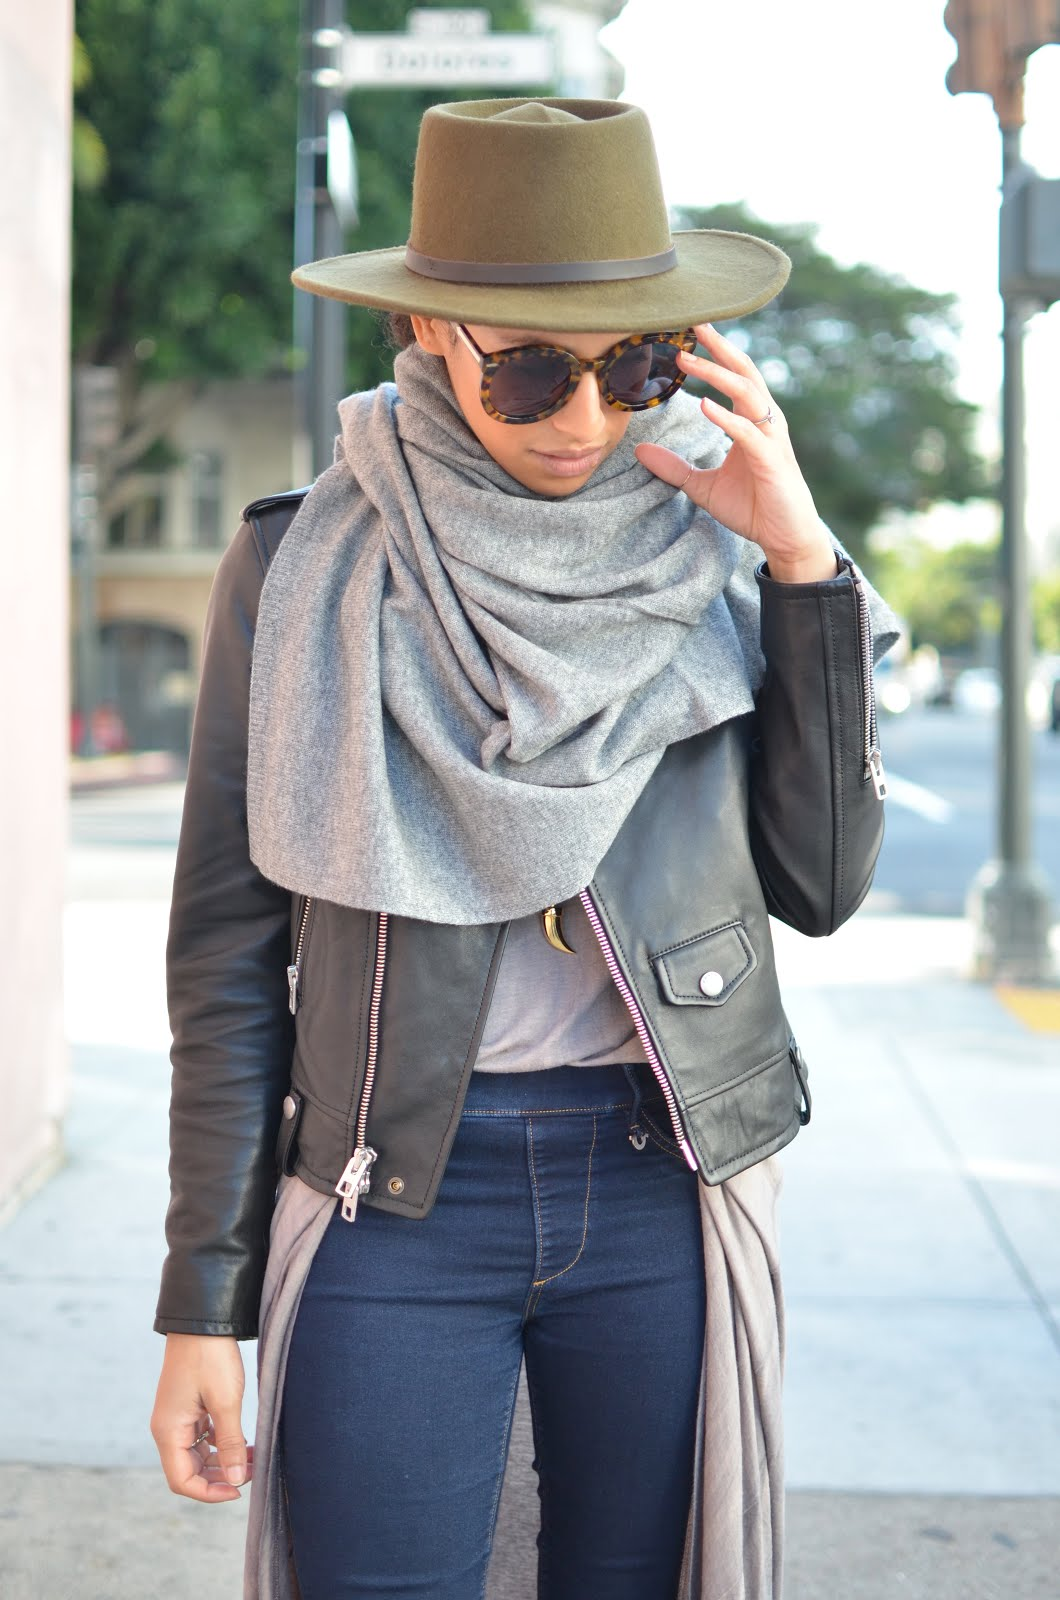 grey cashere wrap, fedora, fall layers, coach moto jacket, moto jacket, skinny denim leggings, d'orsay flats, cool look